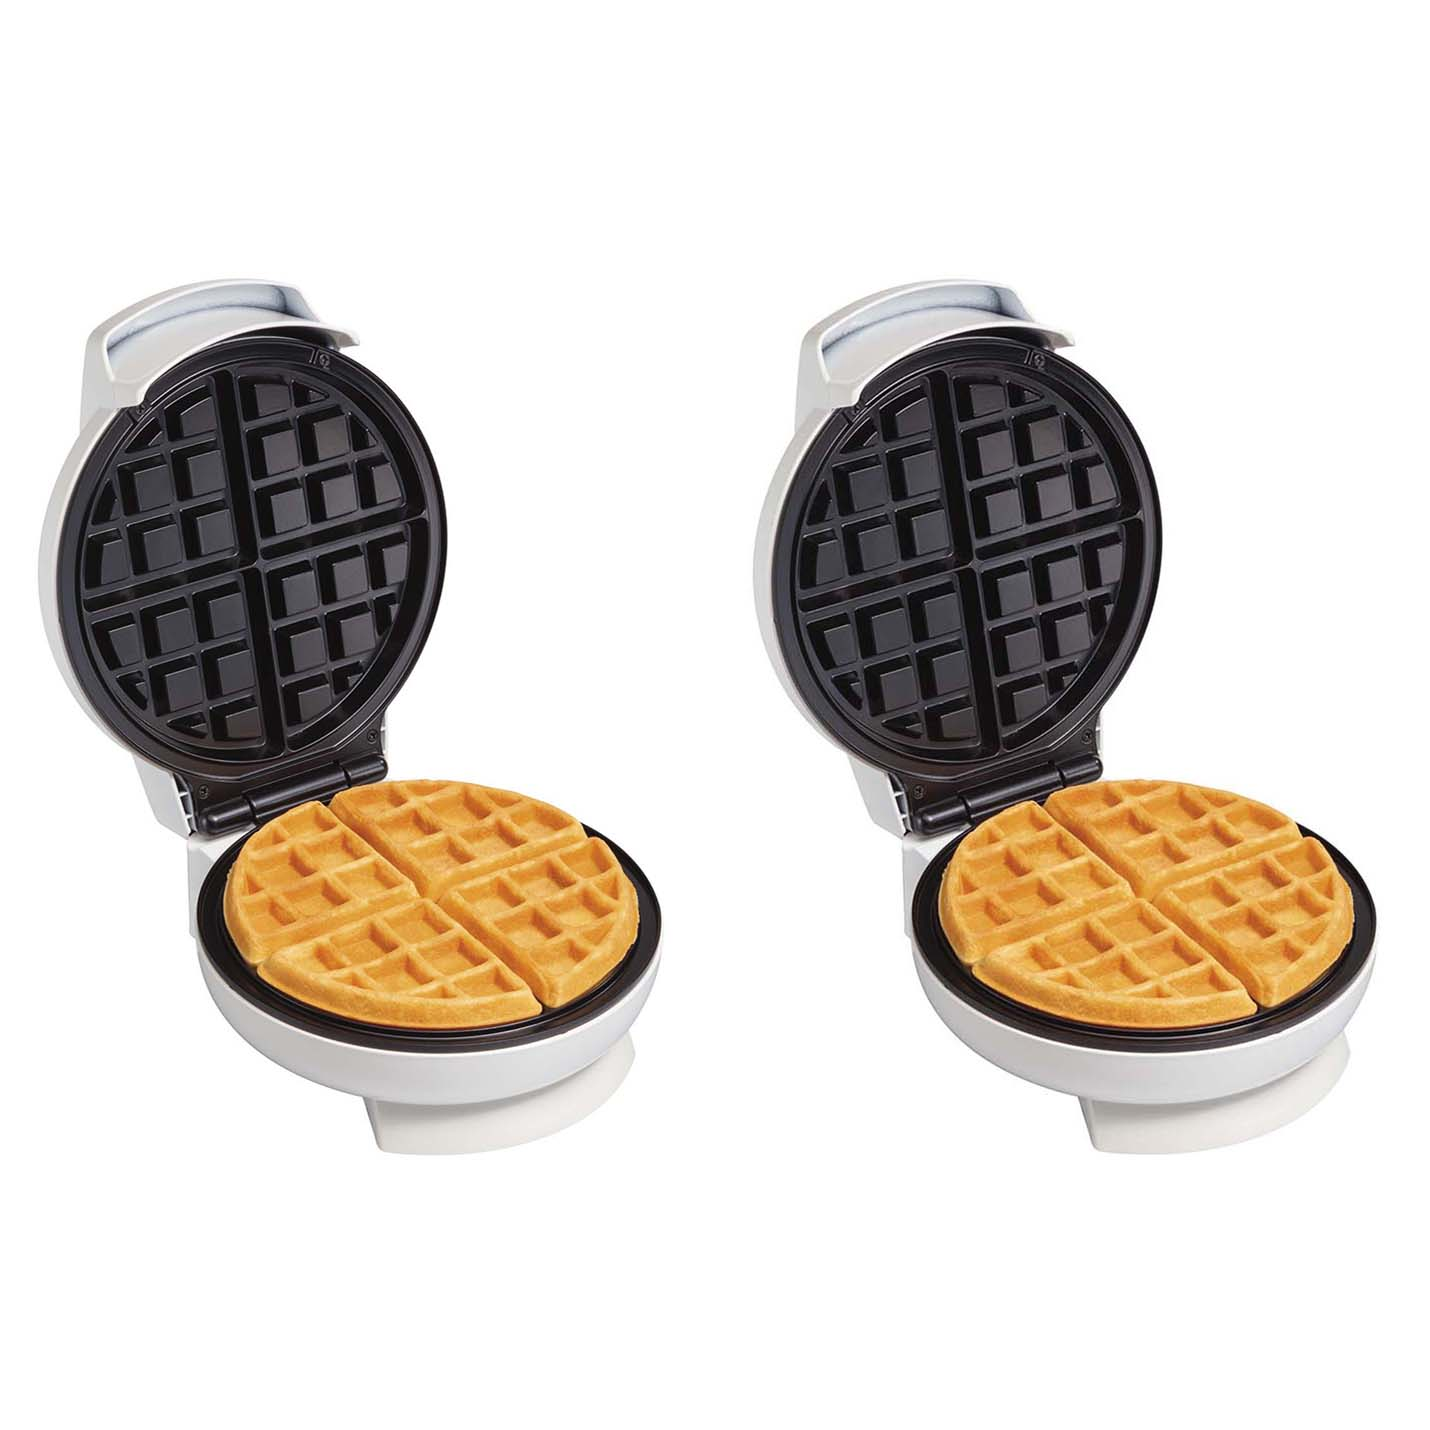 2-Pack Proctor Silex Counter Non-Stick Belgian-Style Waffle Makers | 2 x 26070